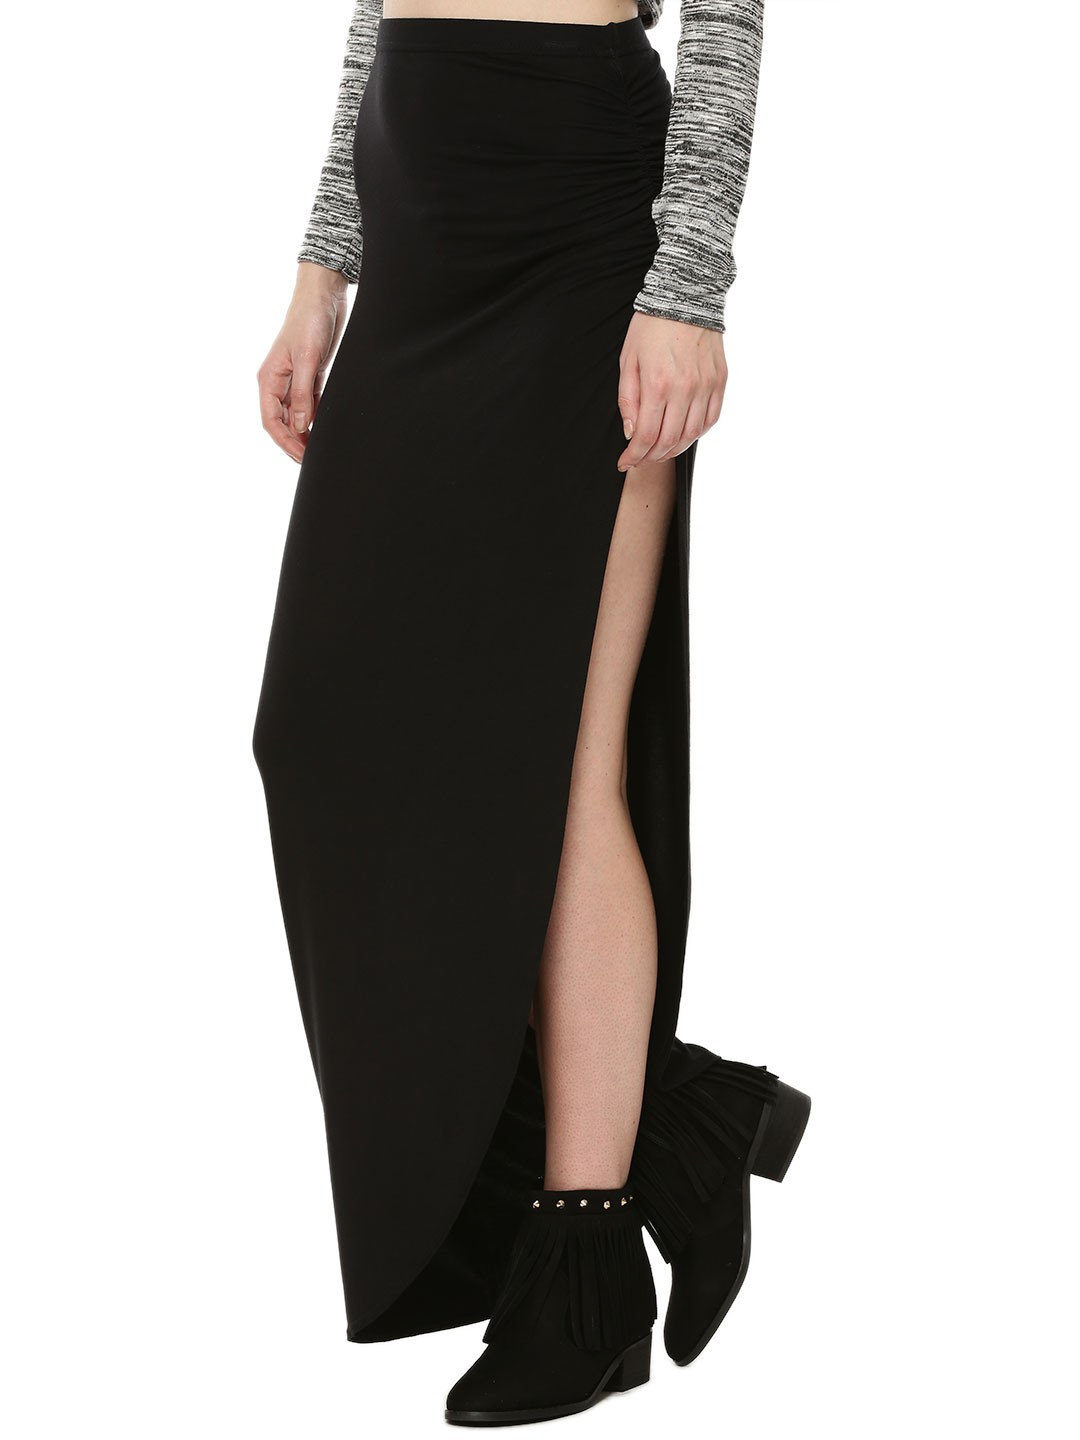 buy boohoo ruched side jersey maxi skirt for